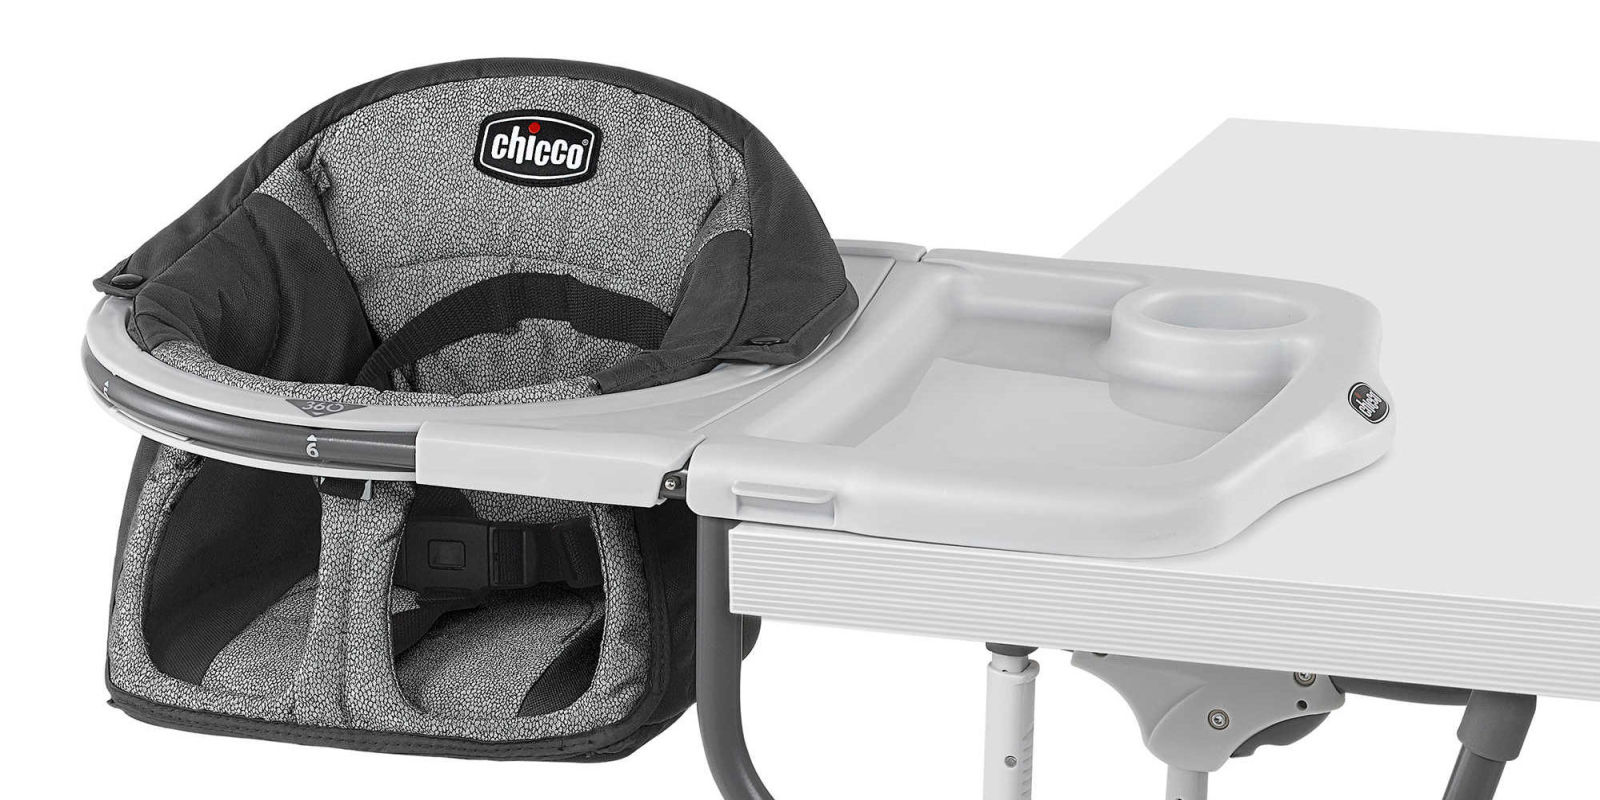 chicco hook on chair 360 recliner lift rental review